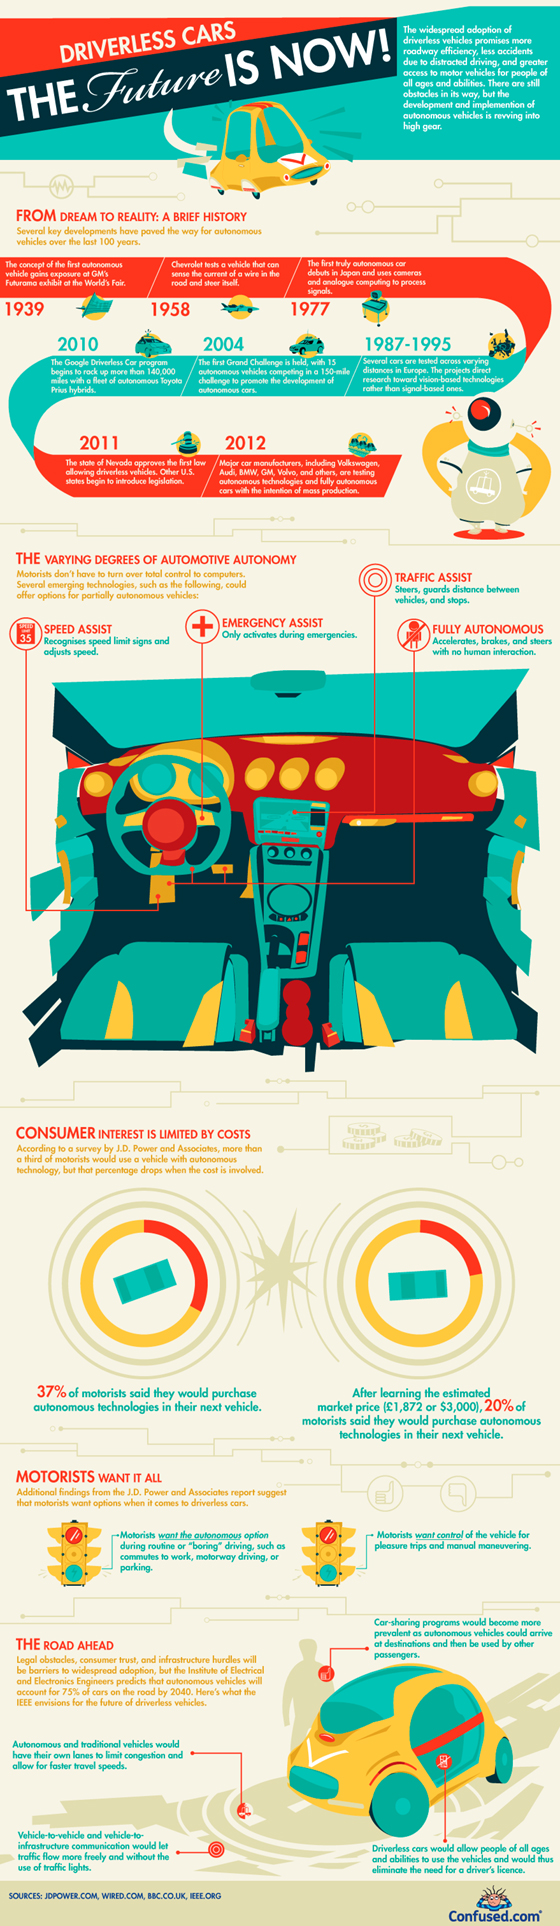 Future Driverless Cars From Google